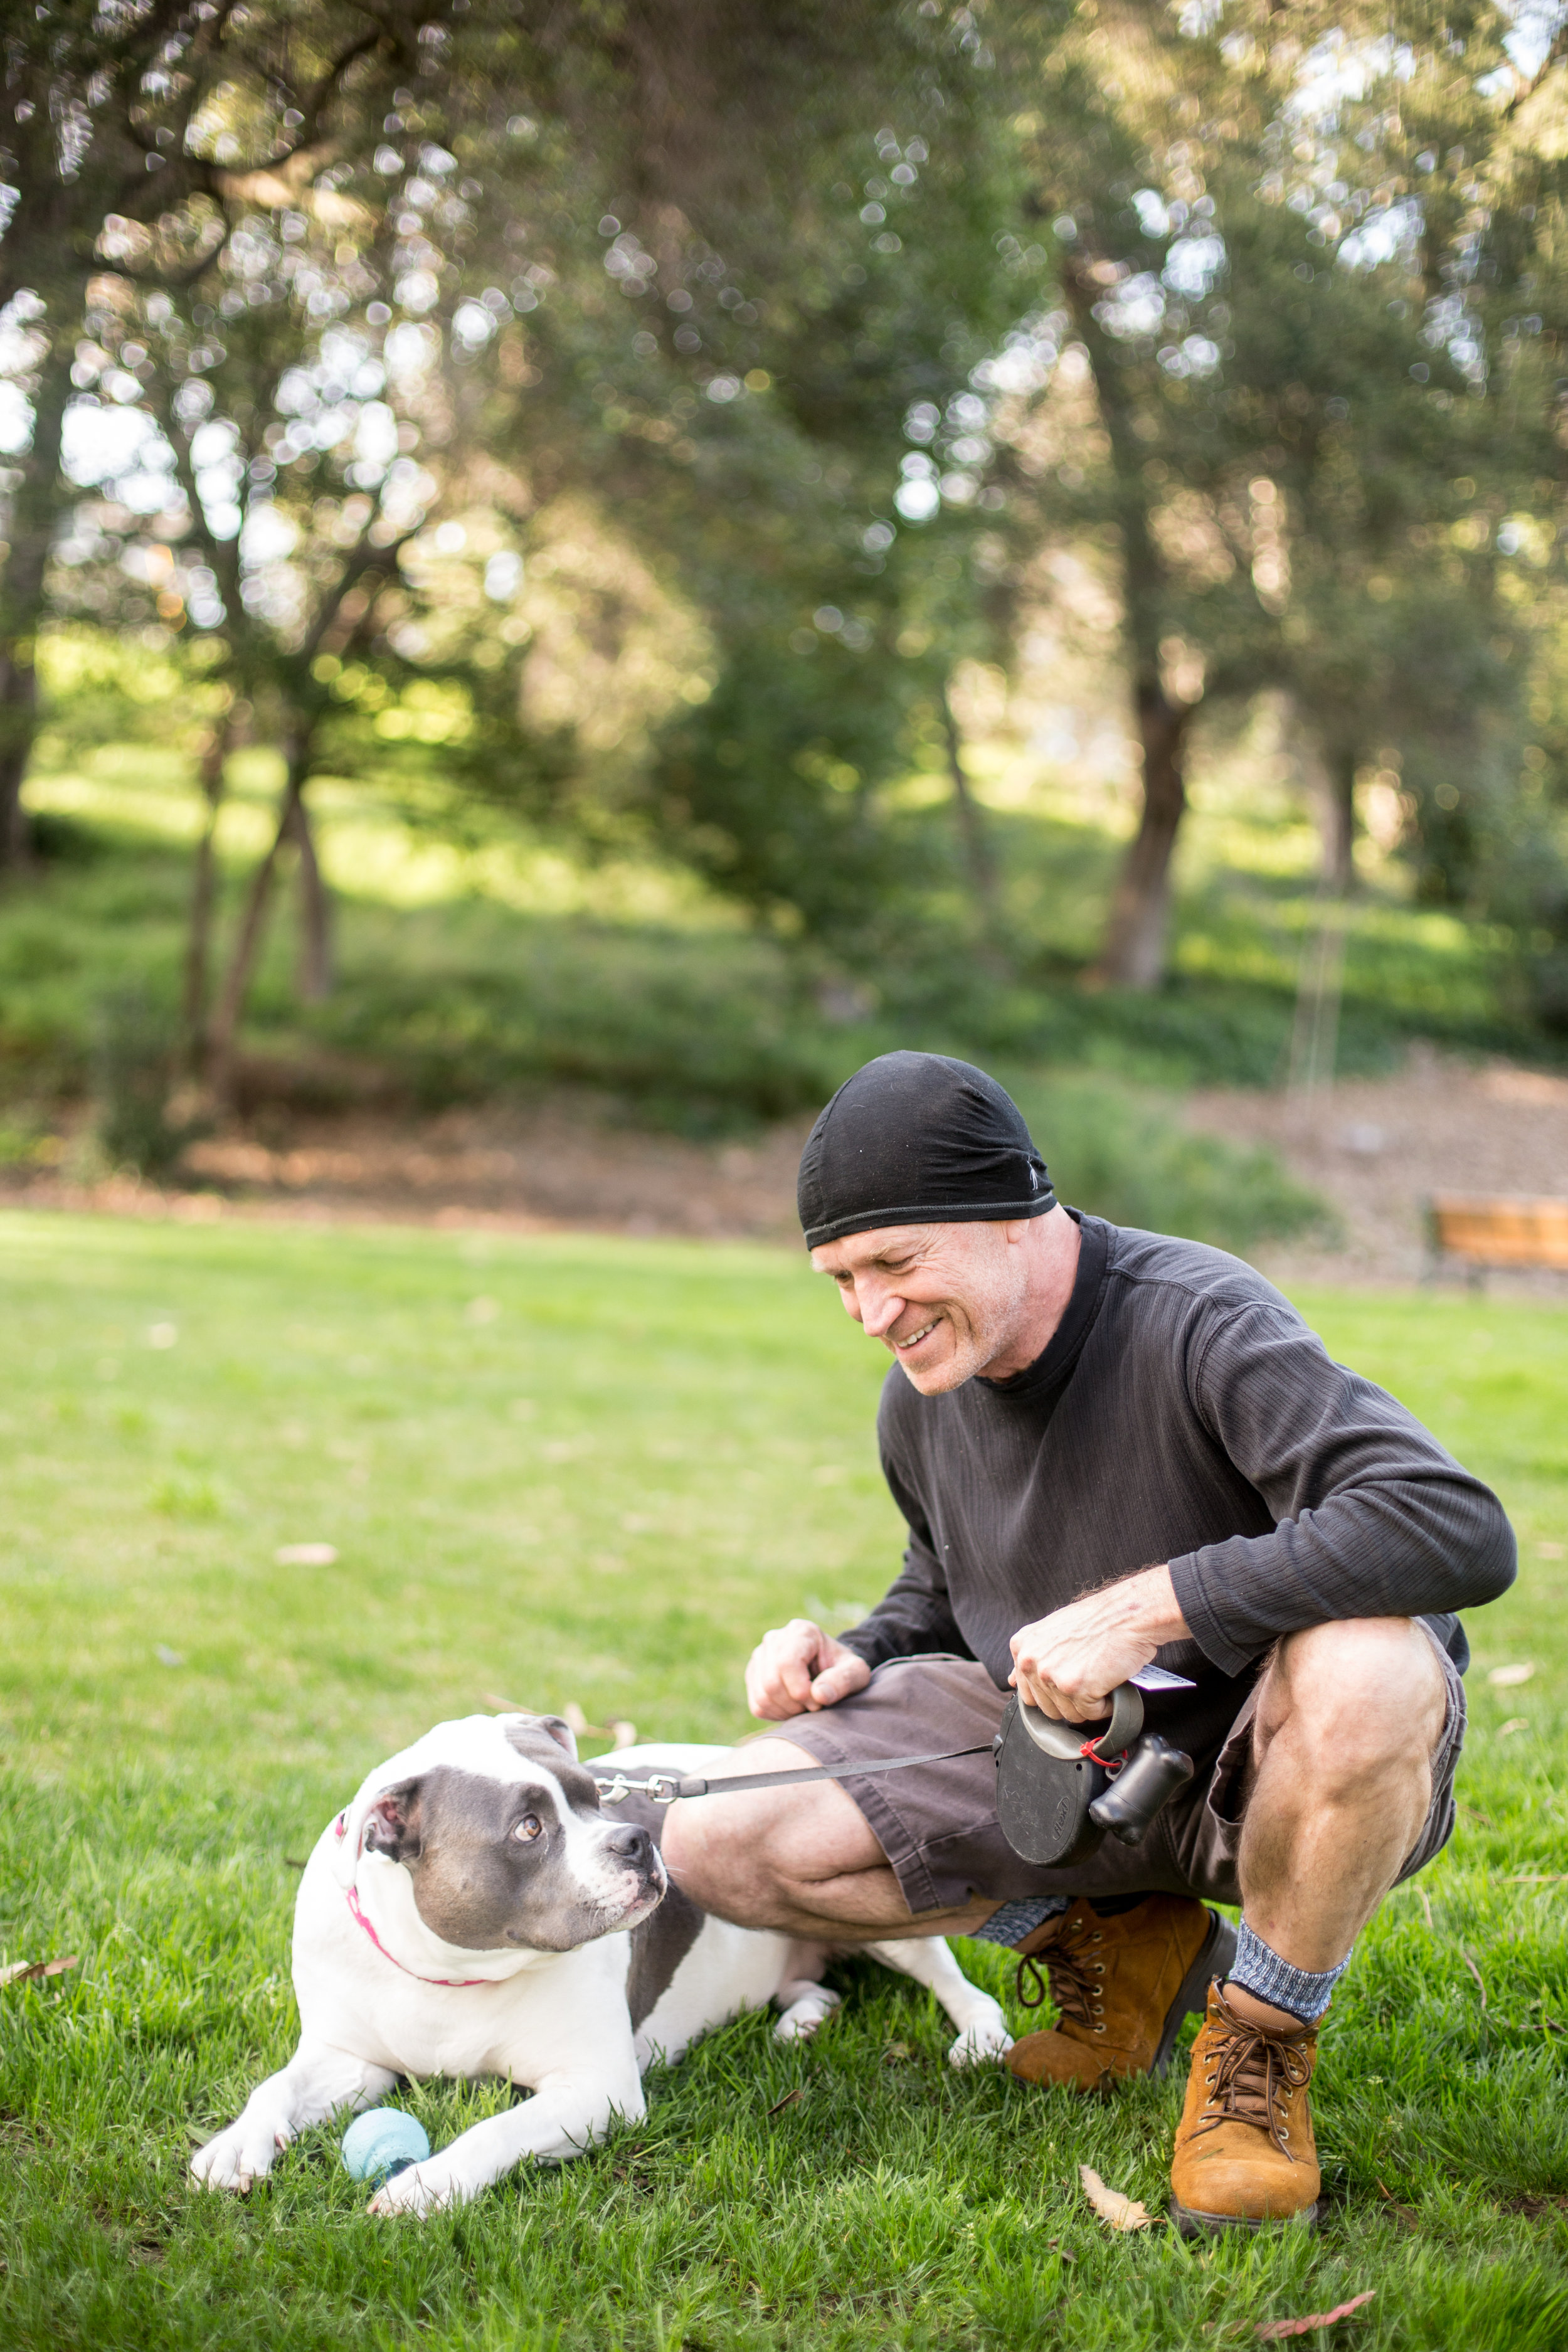 Man with dog at Saratoga Park in San Jose